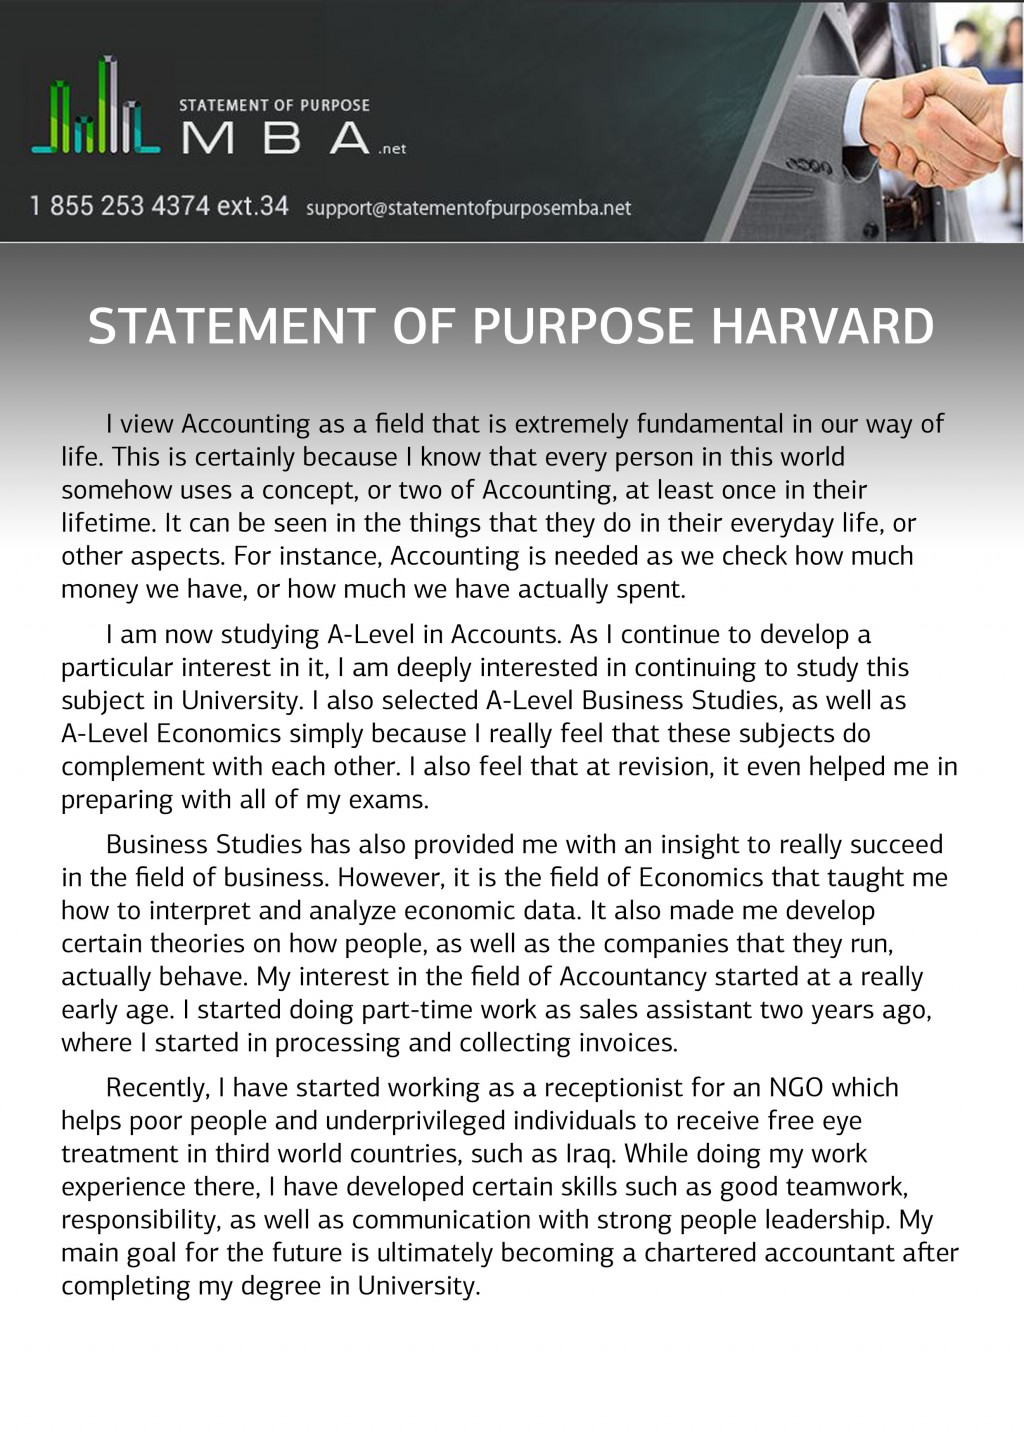 002 Stanford Mba Essay Sample Harvard Business School Tips Statement Of Pu Application Essays Length Questions Successfuls Formidable Word Limit Question 2018 Large